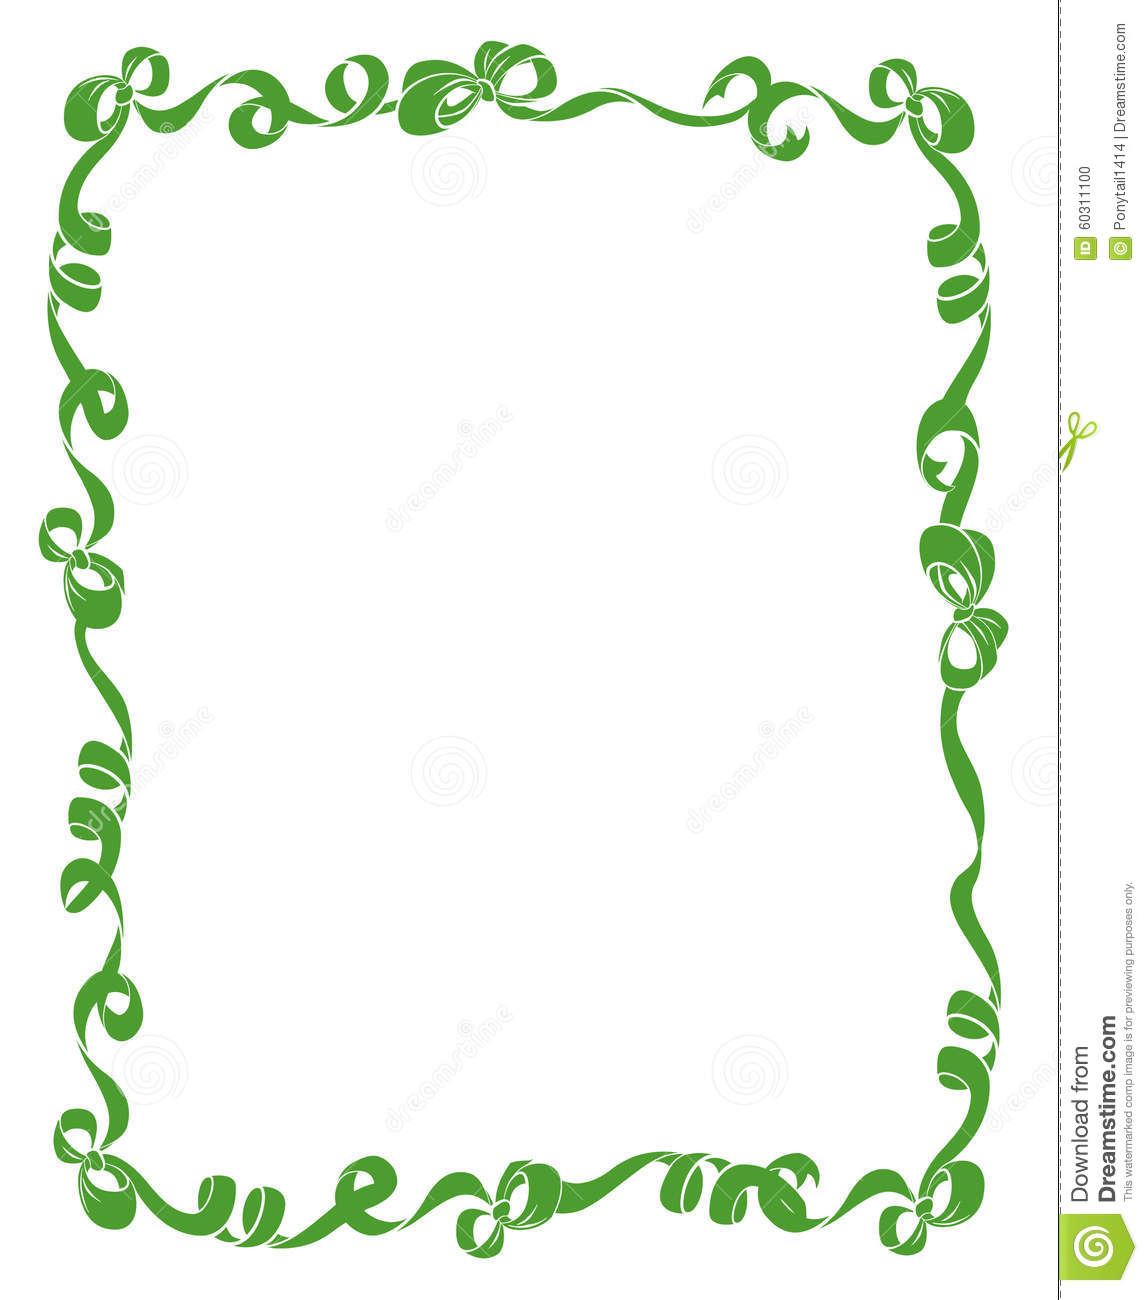 Frame Of Green Ribbons And Bows Stock Illustration - Illustration of ...